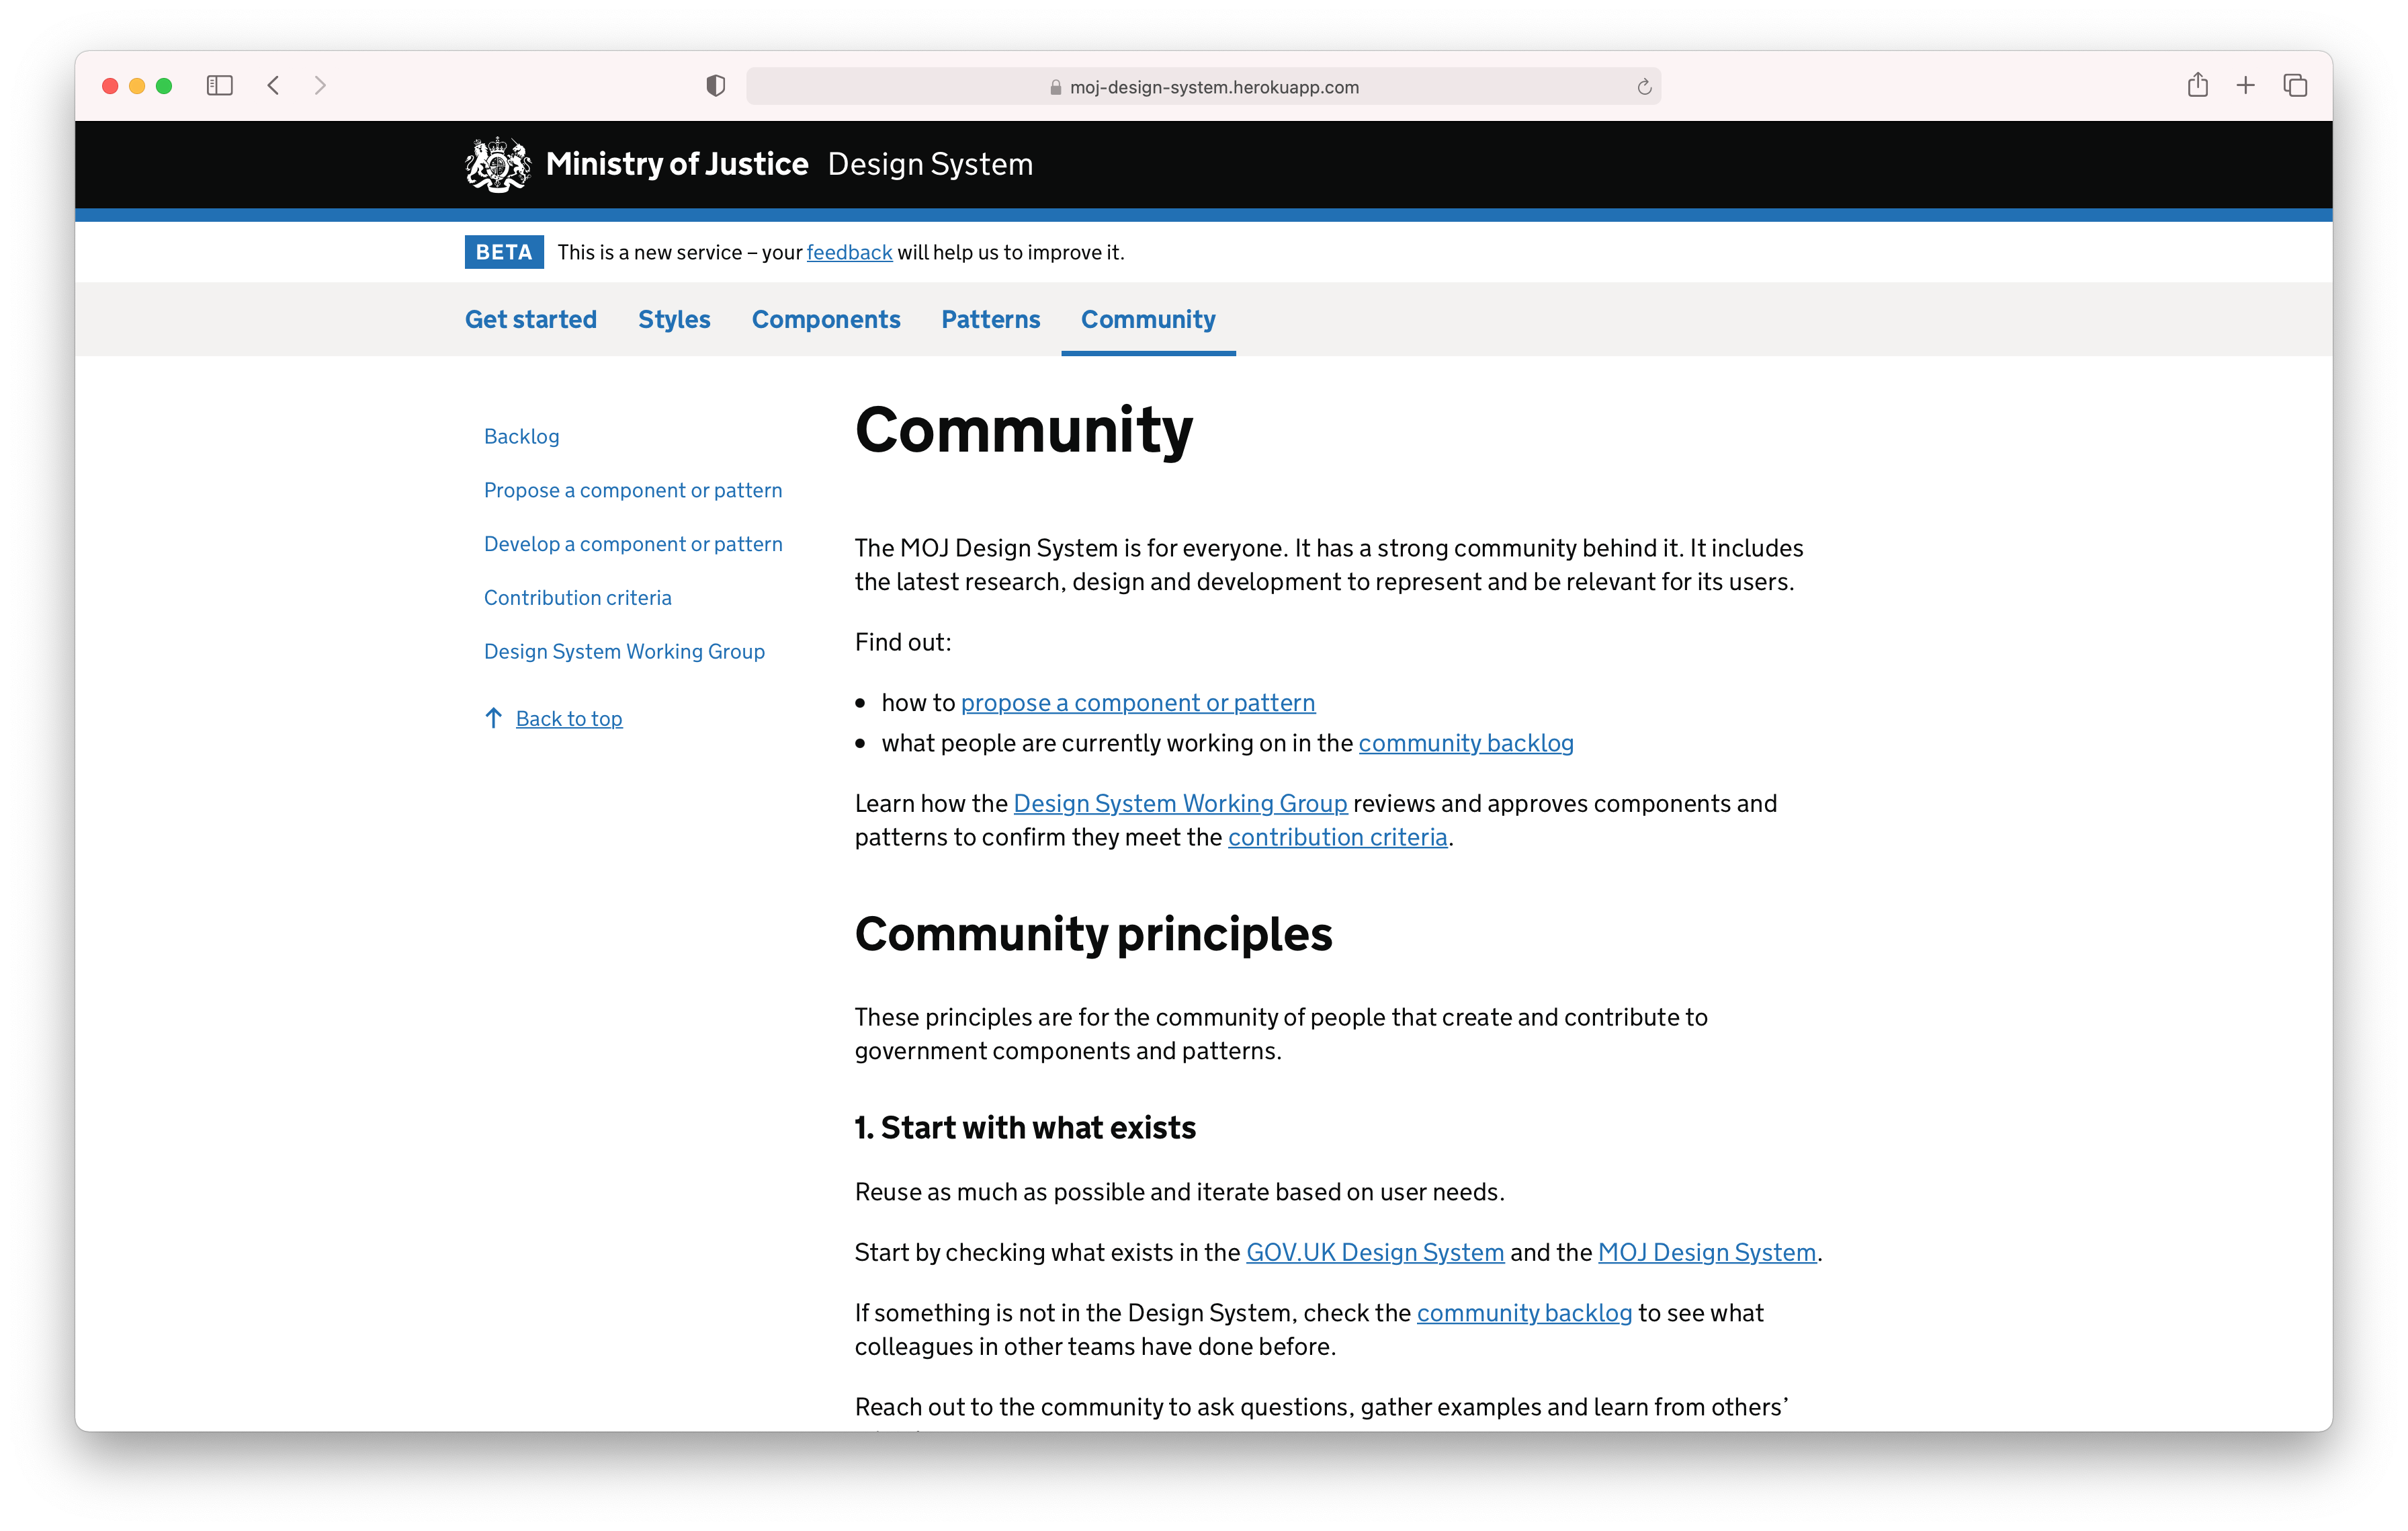 Screenshot of the MoJ Design System community section.